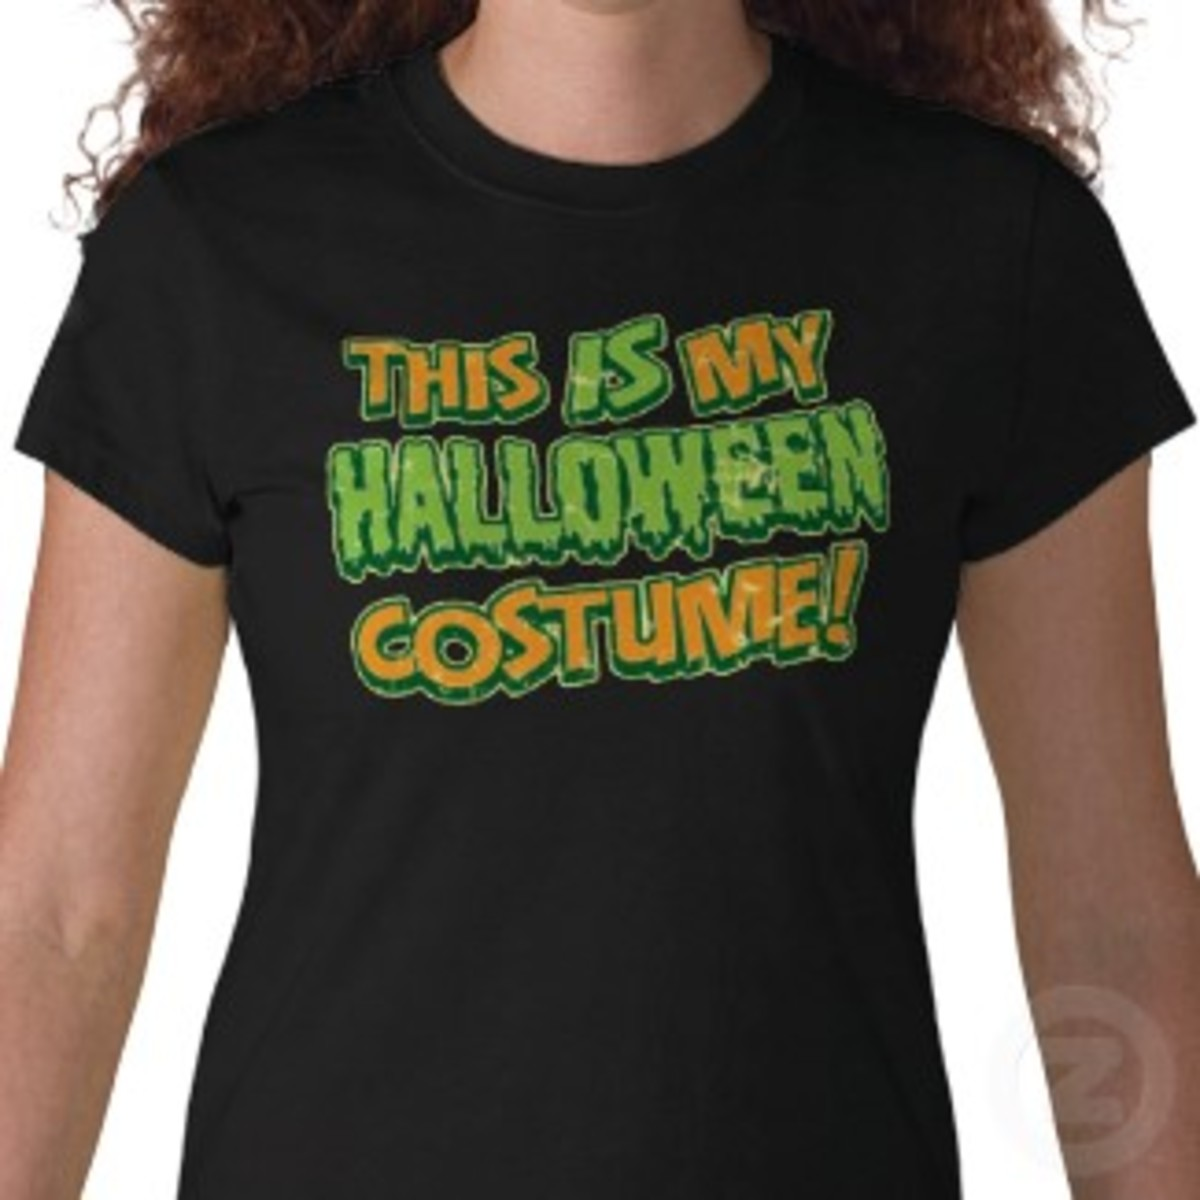 This is my Halloween Costume t shirt created by koncepts on Zazzle